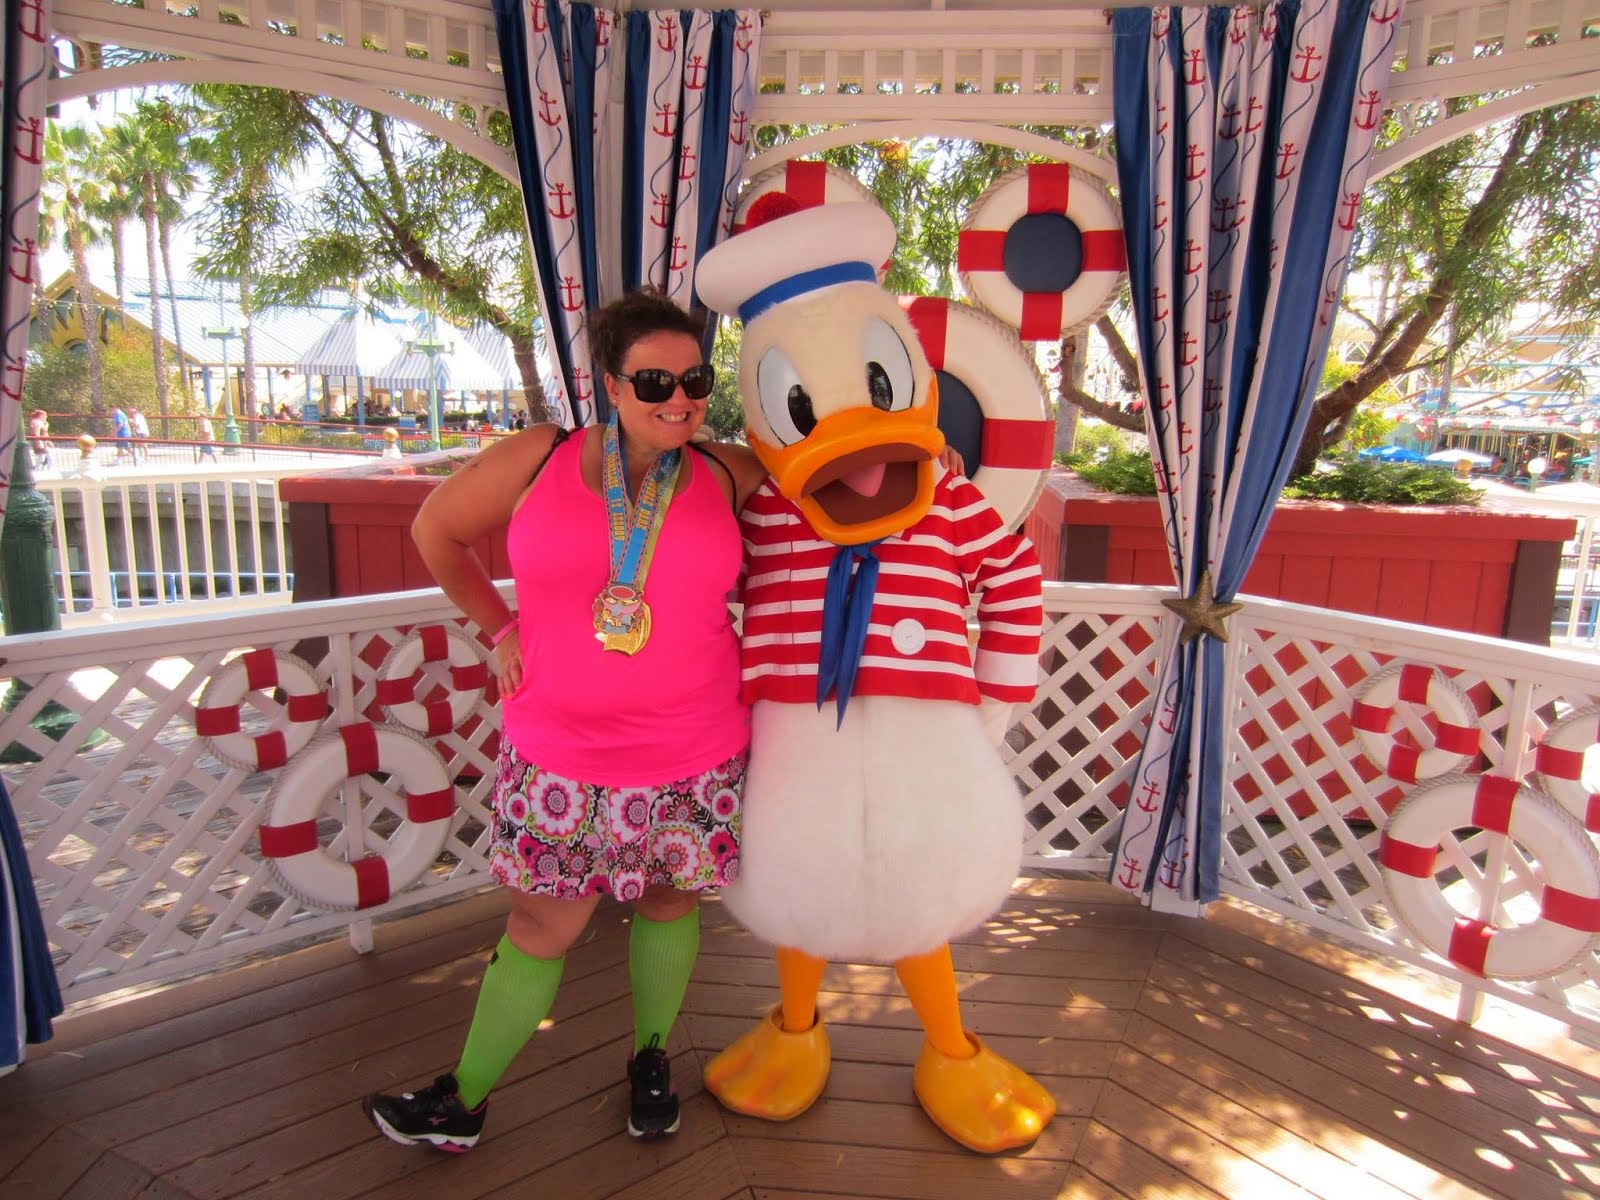 Celebrating Dumbo Double Dare with my friend Donald Duck